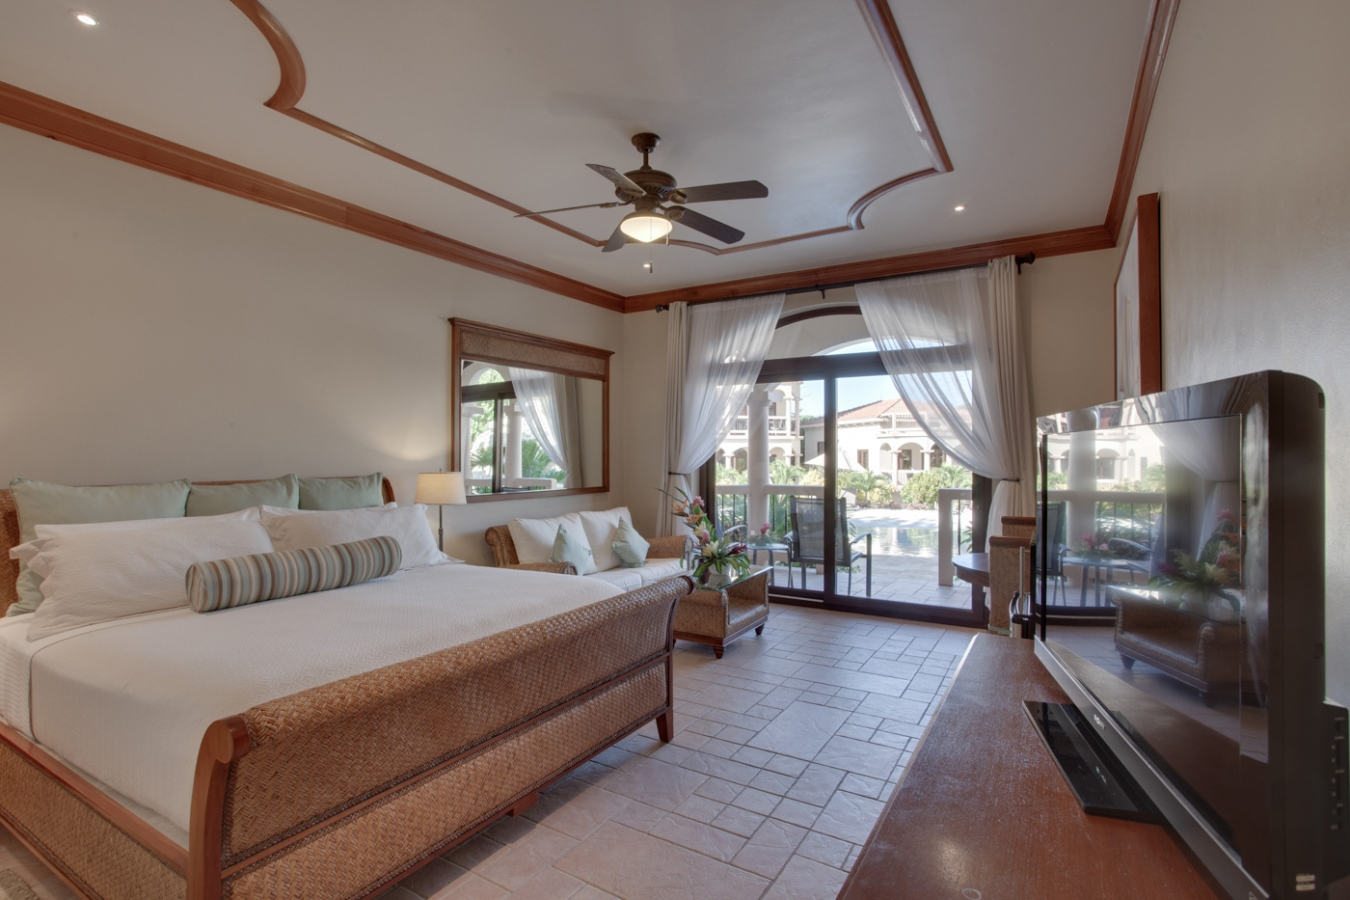 Luxury hotel rooms coco beach resort for Luxury beach hotels